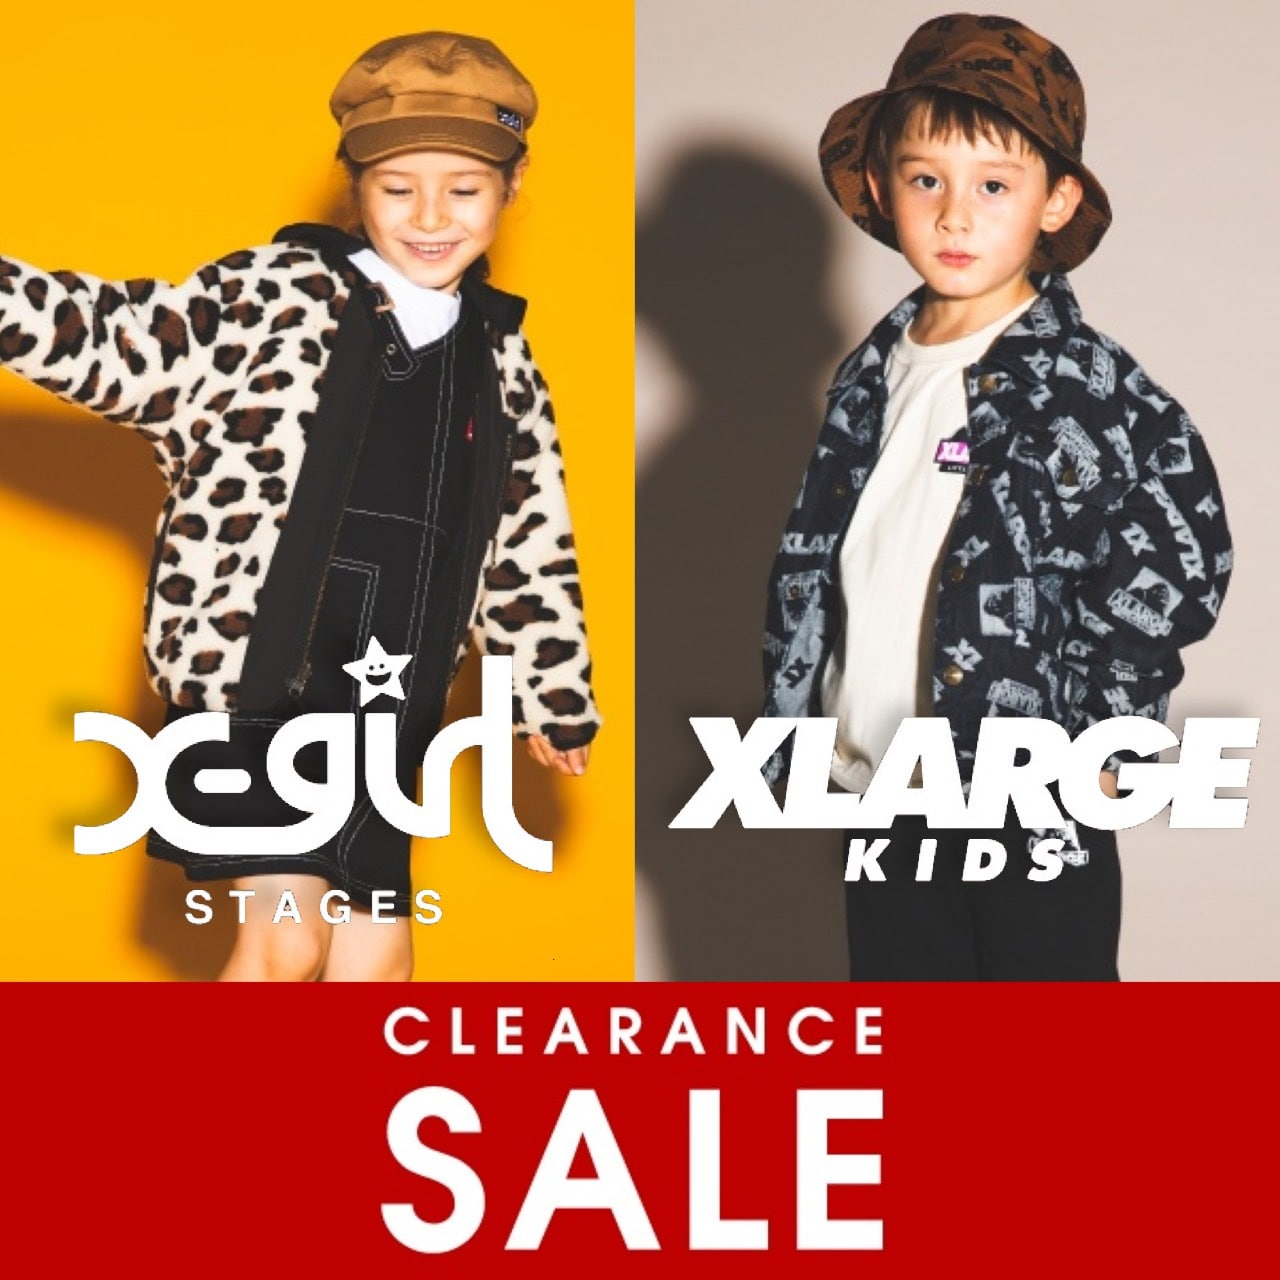 X-girl Stages・XLARGE KIDS クリアランスセールスタート!